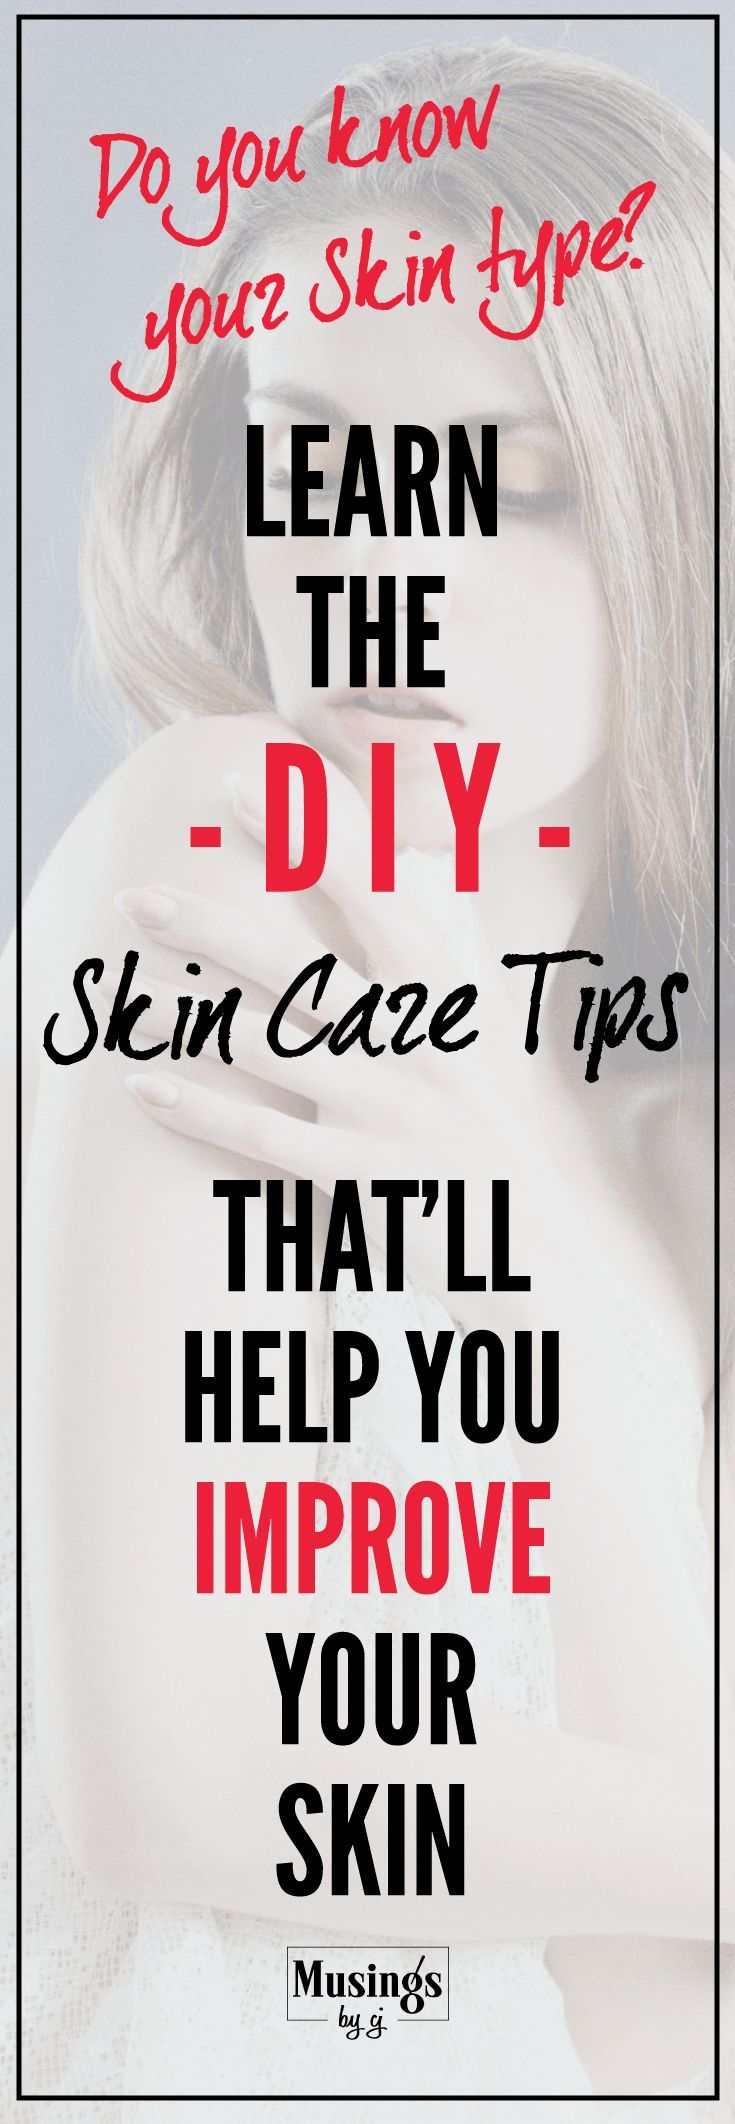 Skin Care Tips according to Skin Types. Know you Skin Type and learn the DIY tips for skin care. Easy Natural Skin Care routines for acne and blemishes for a naturally beautiful skin